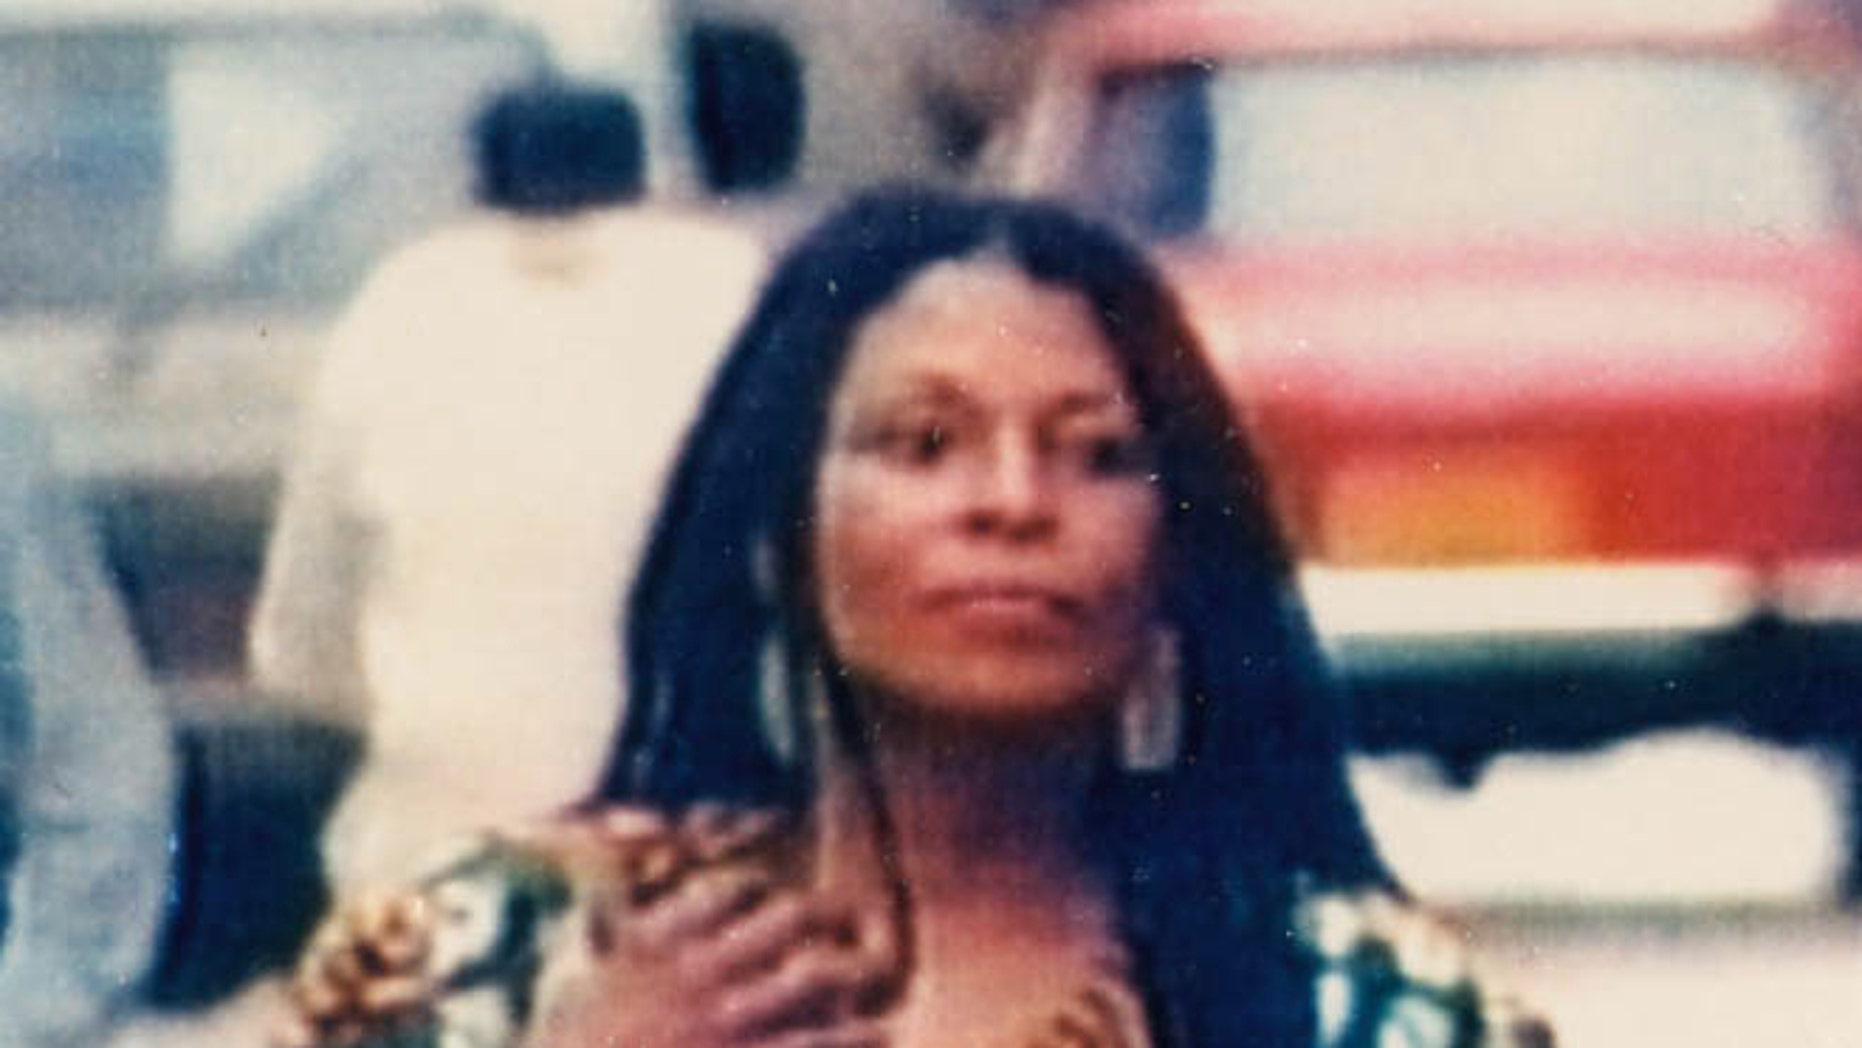 FILE - This is an undated file photo provided by the New Jersey State Police showing Assata Shakur - the former Joanne Chesimard - who was put on a U.S. government terrorist watch list on May 2, 2005. Shakur, 57, was convicted in 1973 of killing New Jersey State Trooper Werner Foerster as he lay on the ground. She escaped from prison in 1979 and fled to Cuba. The FBI is scheduled to make an announcement Thursday, May 2, 2013 regarding Joanne Chesimard, who killed a New Jersey state trooper on this date 40 years ago. (AP Photo/New Jersey State Police, File)